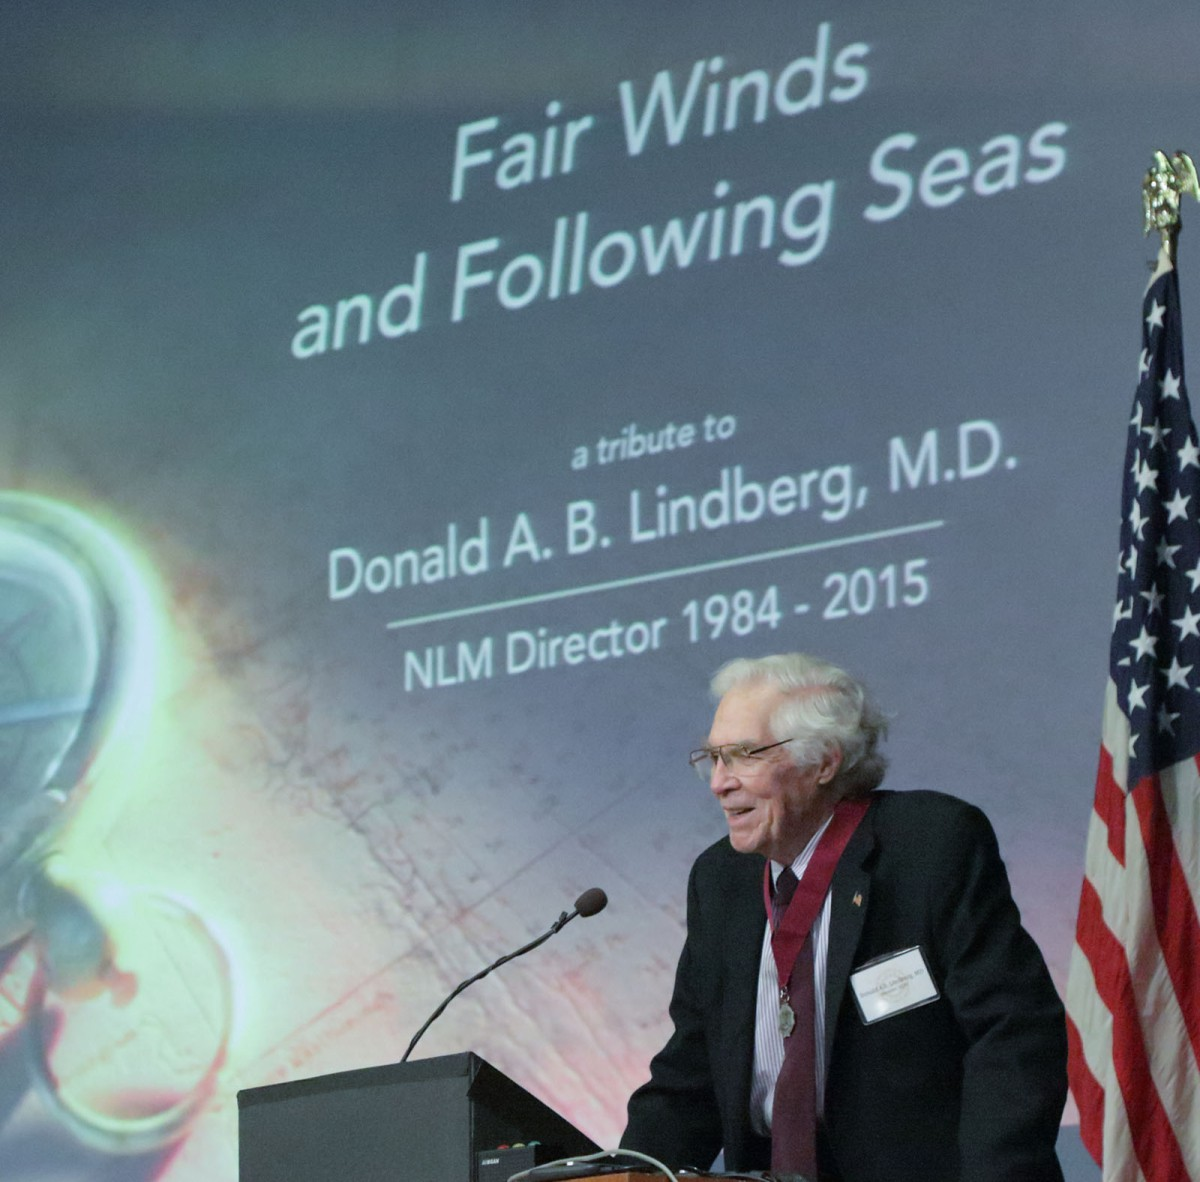 Dr. Lindberg addresses audience at NIH Tribute